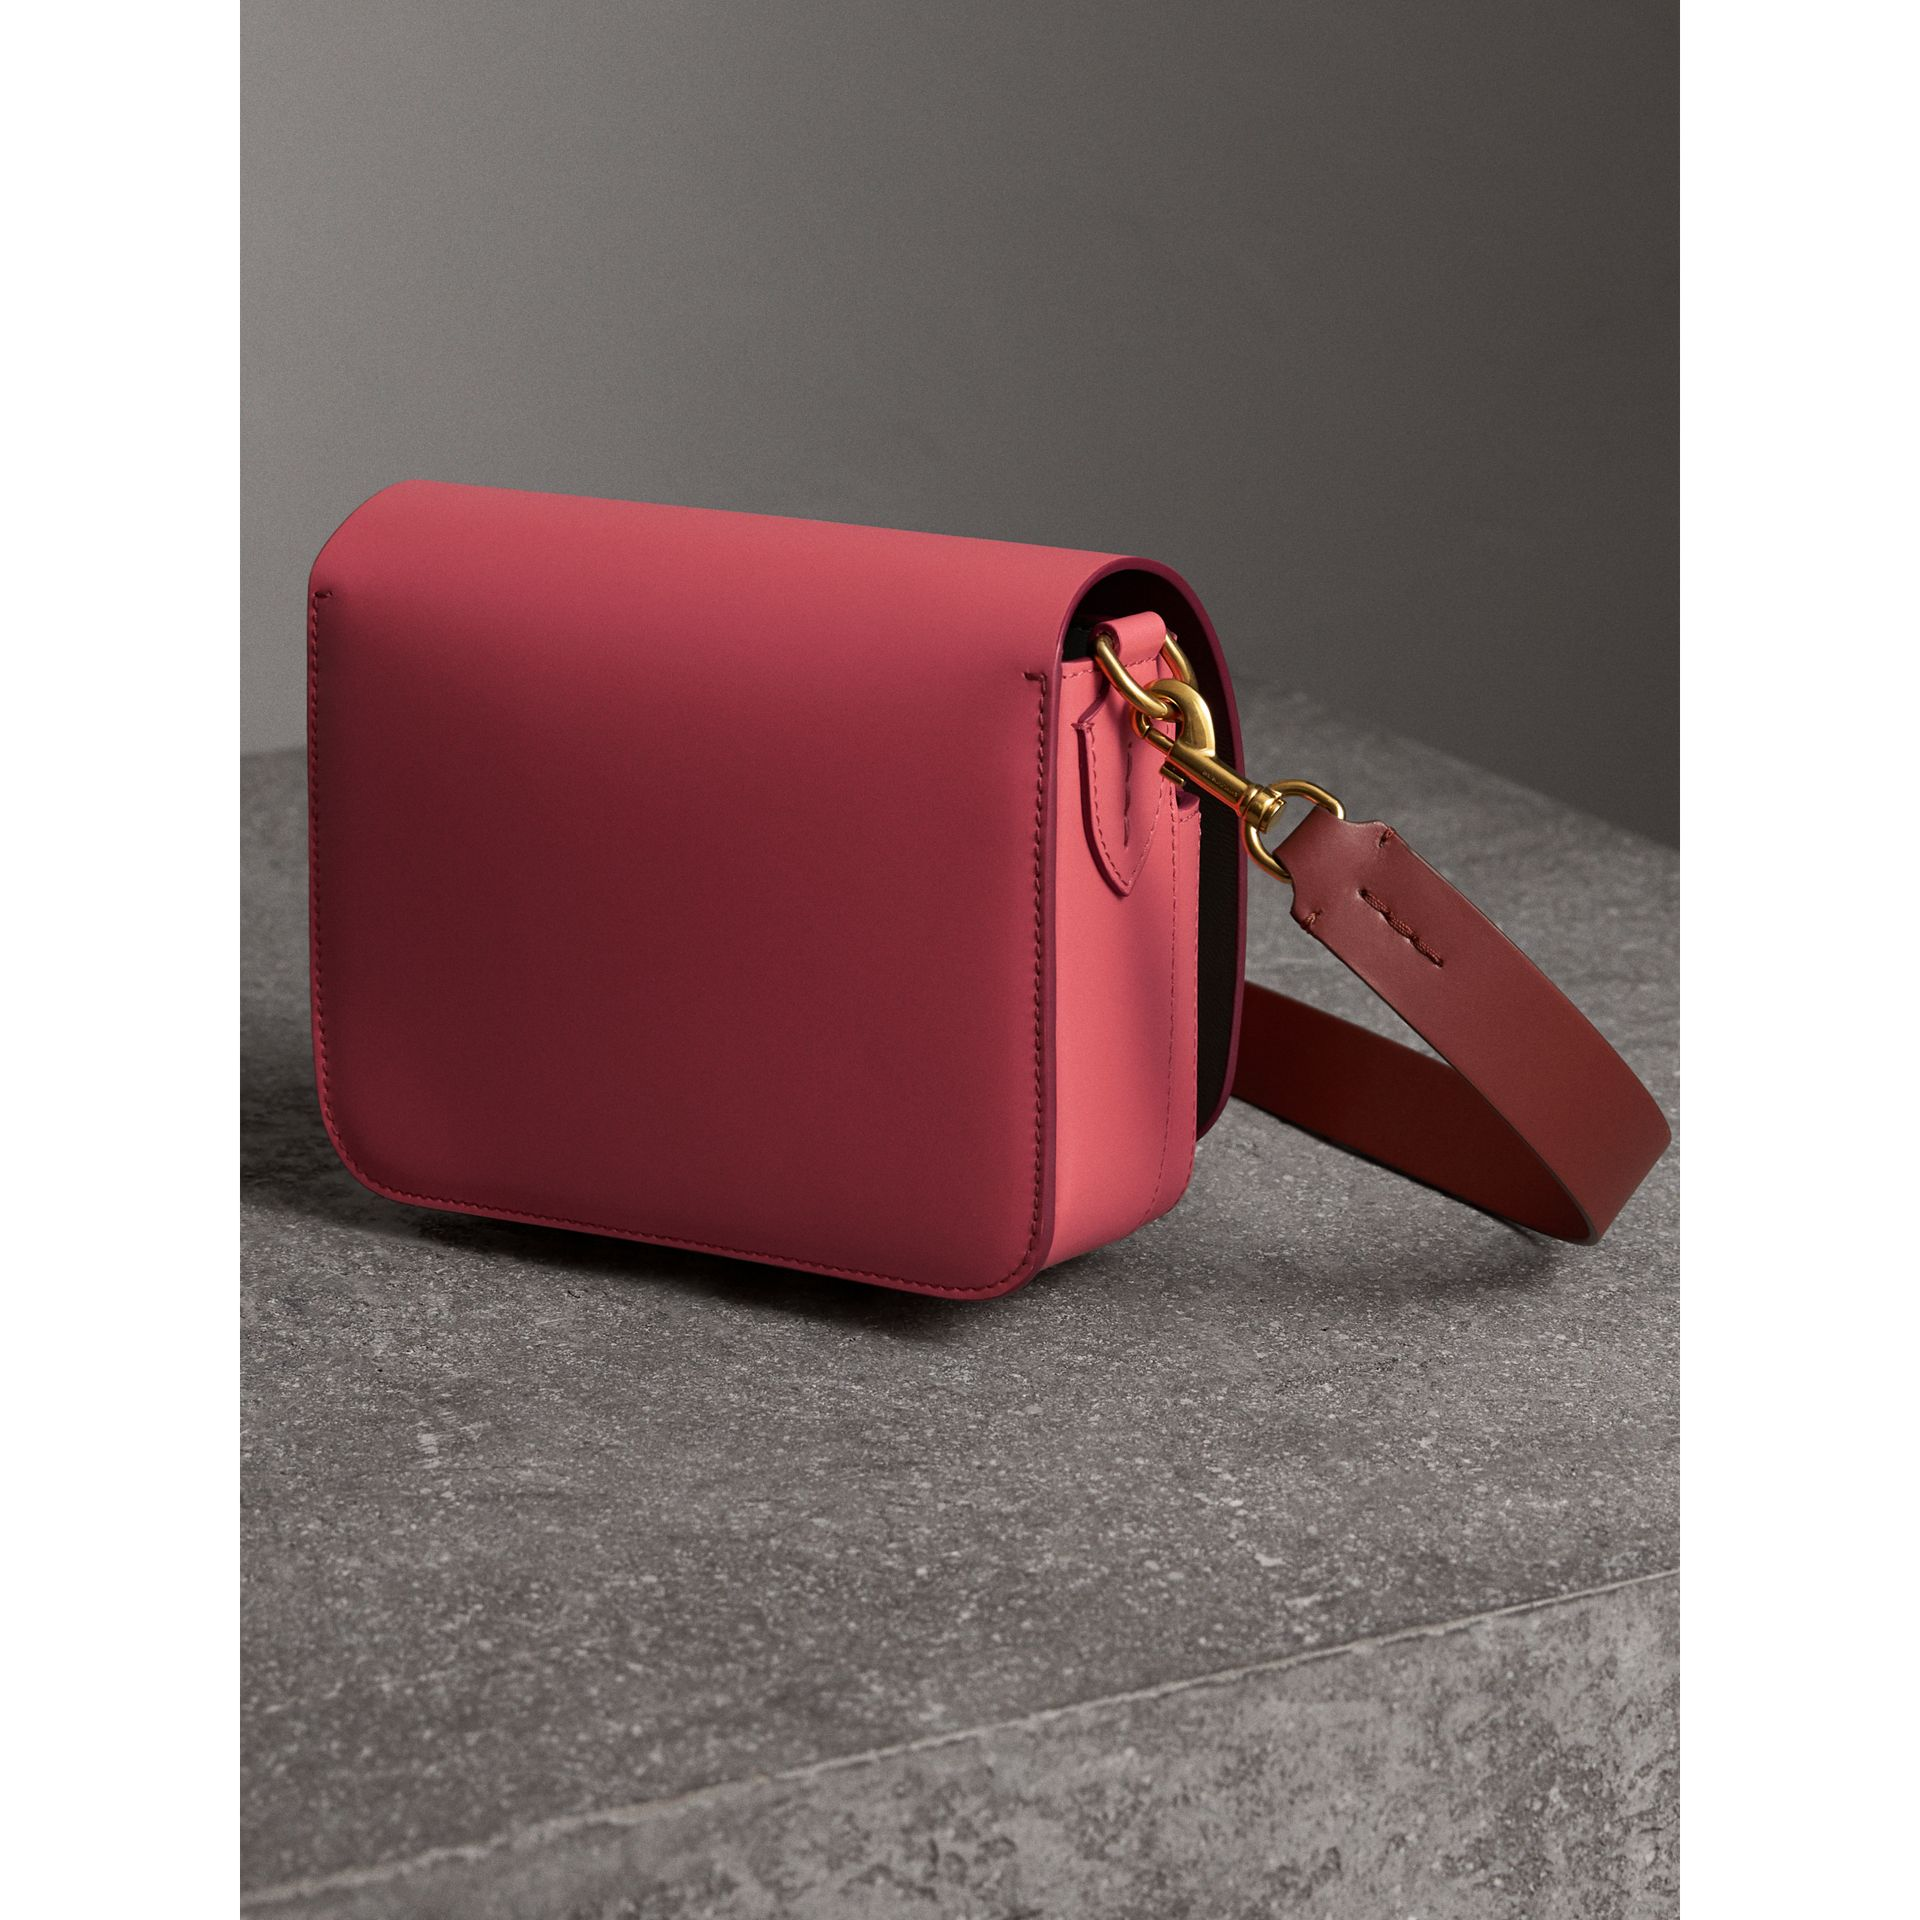 Sac The Satchel carré en cuir (Pivoine Vif) - Femme | Burberry Canada - photo de la galerie 3